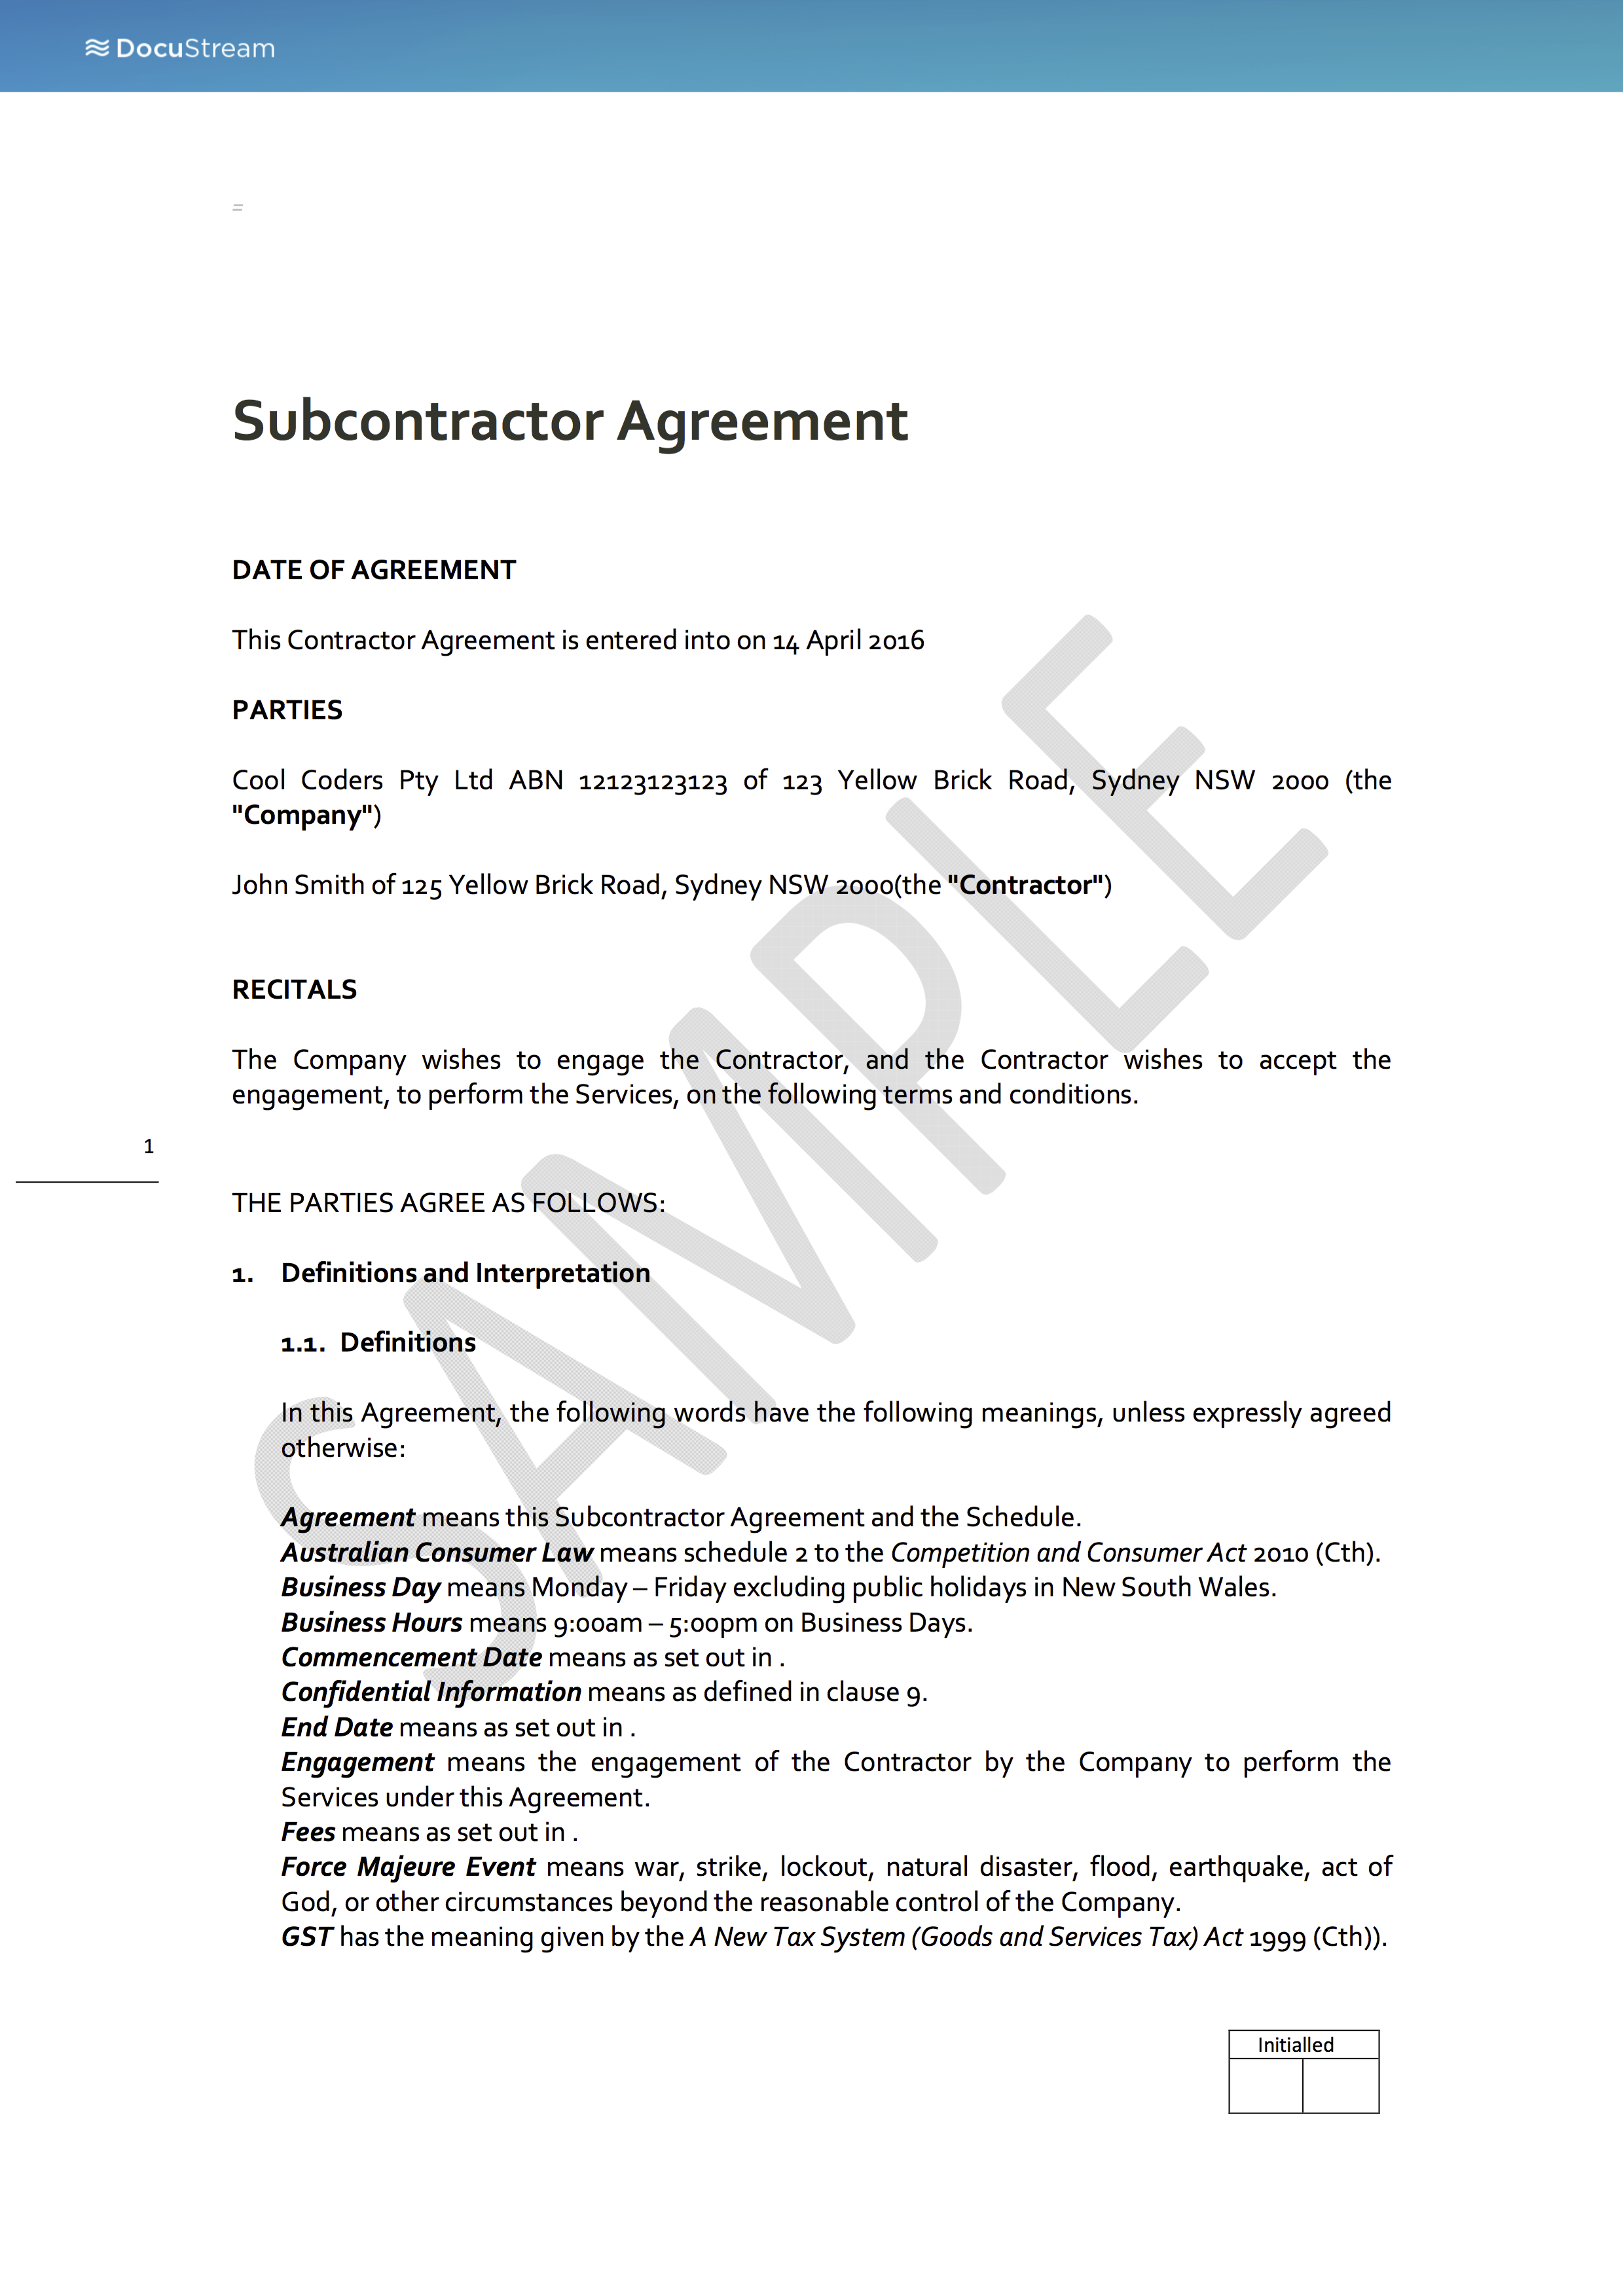 subcontractors agreement template - back to back subcontractor agreement docustream